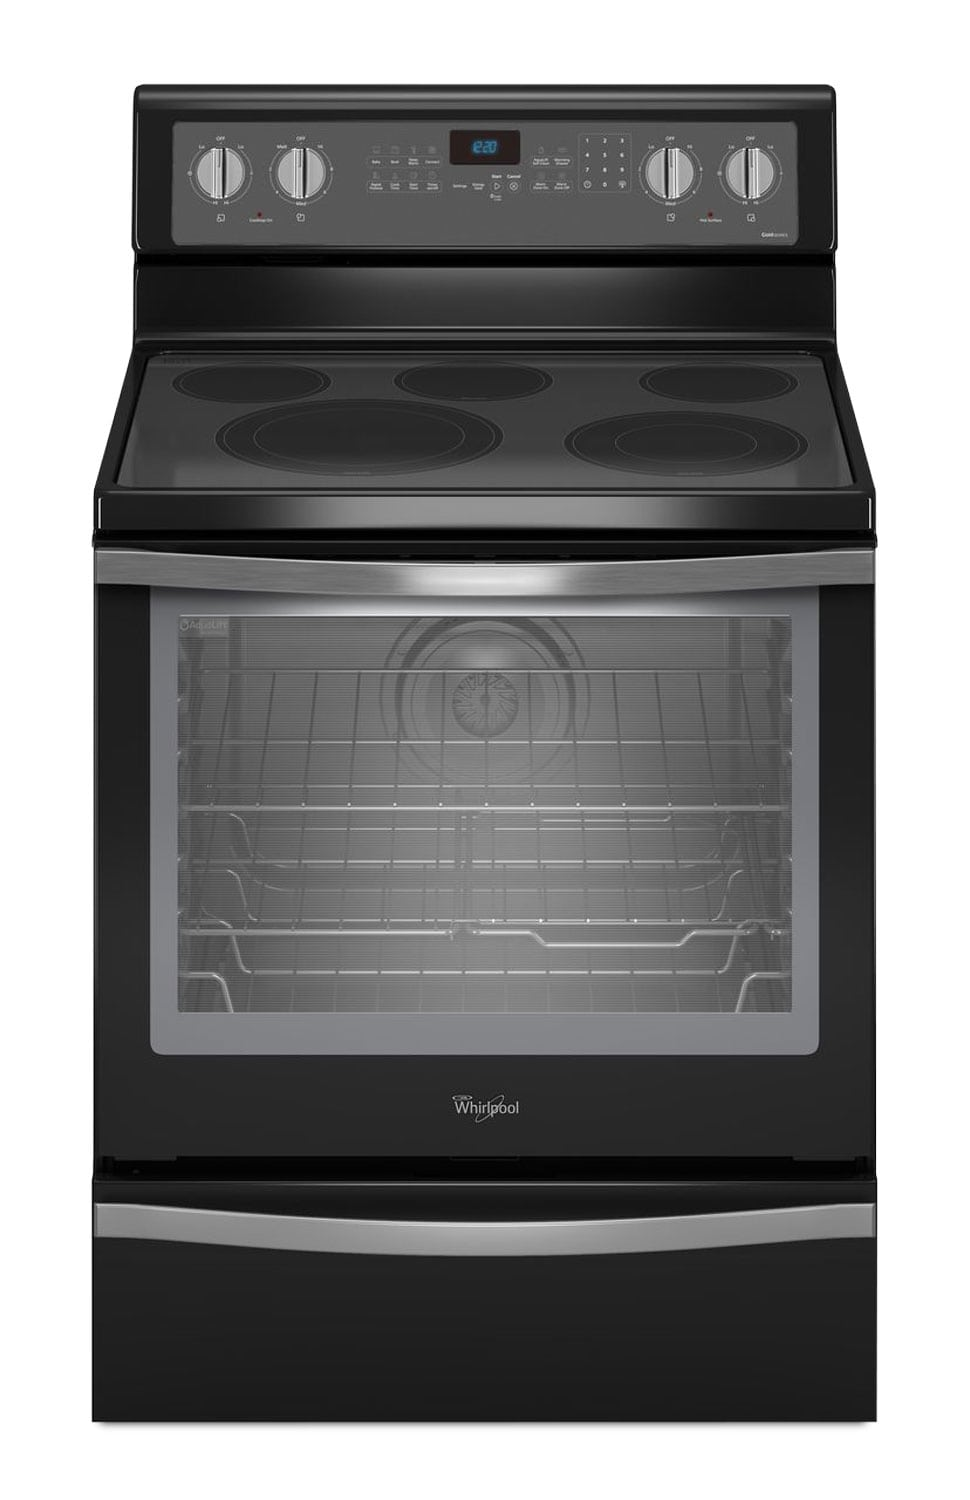 [Whirlpool Black Freestanding Electric Convection Range (6.4 Cu. Ft.) - YWFE715H0EE]